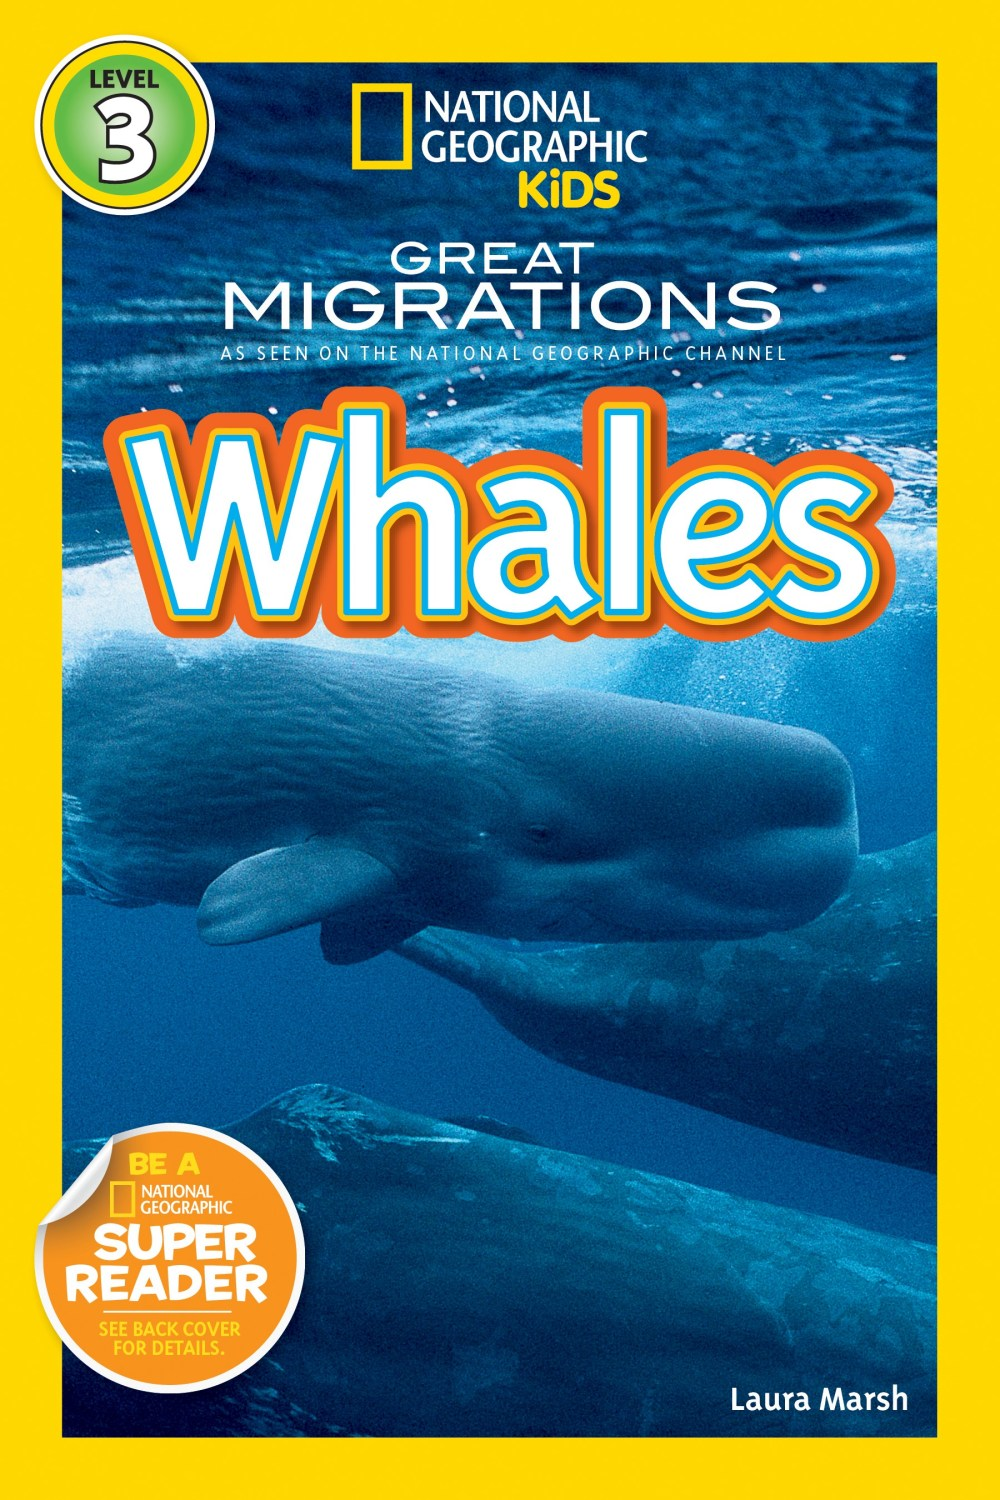 medium resolution of Great Migrations: Whales (National Geographic Kids) Printables